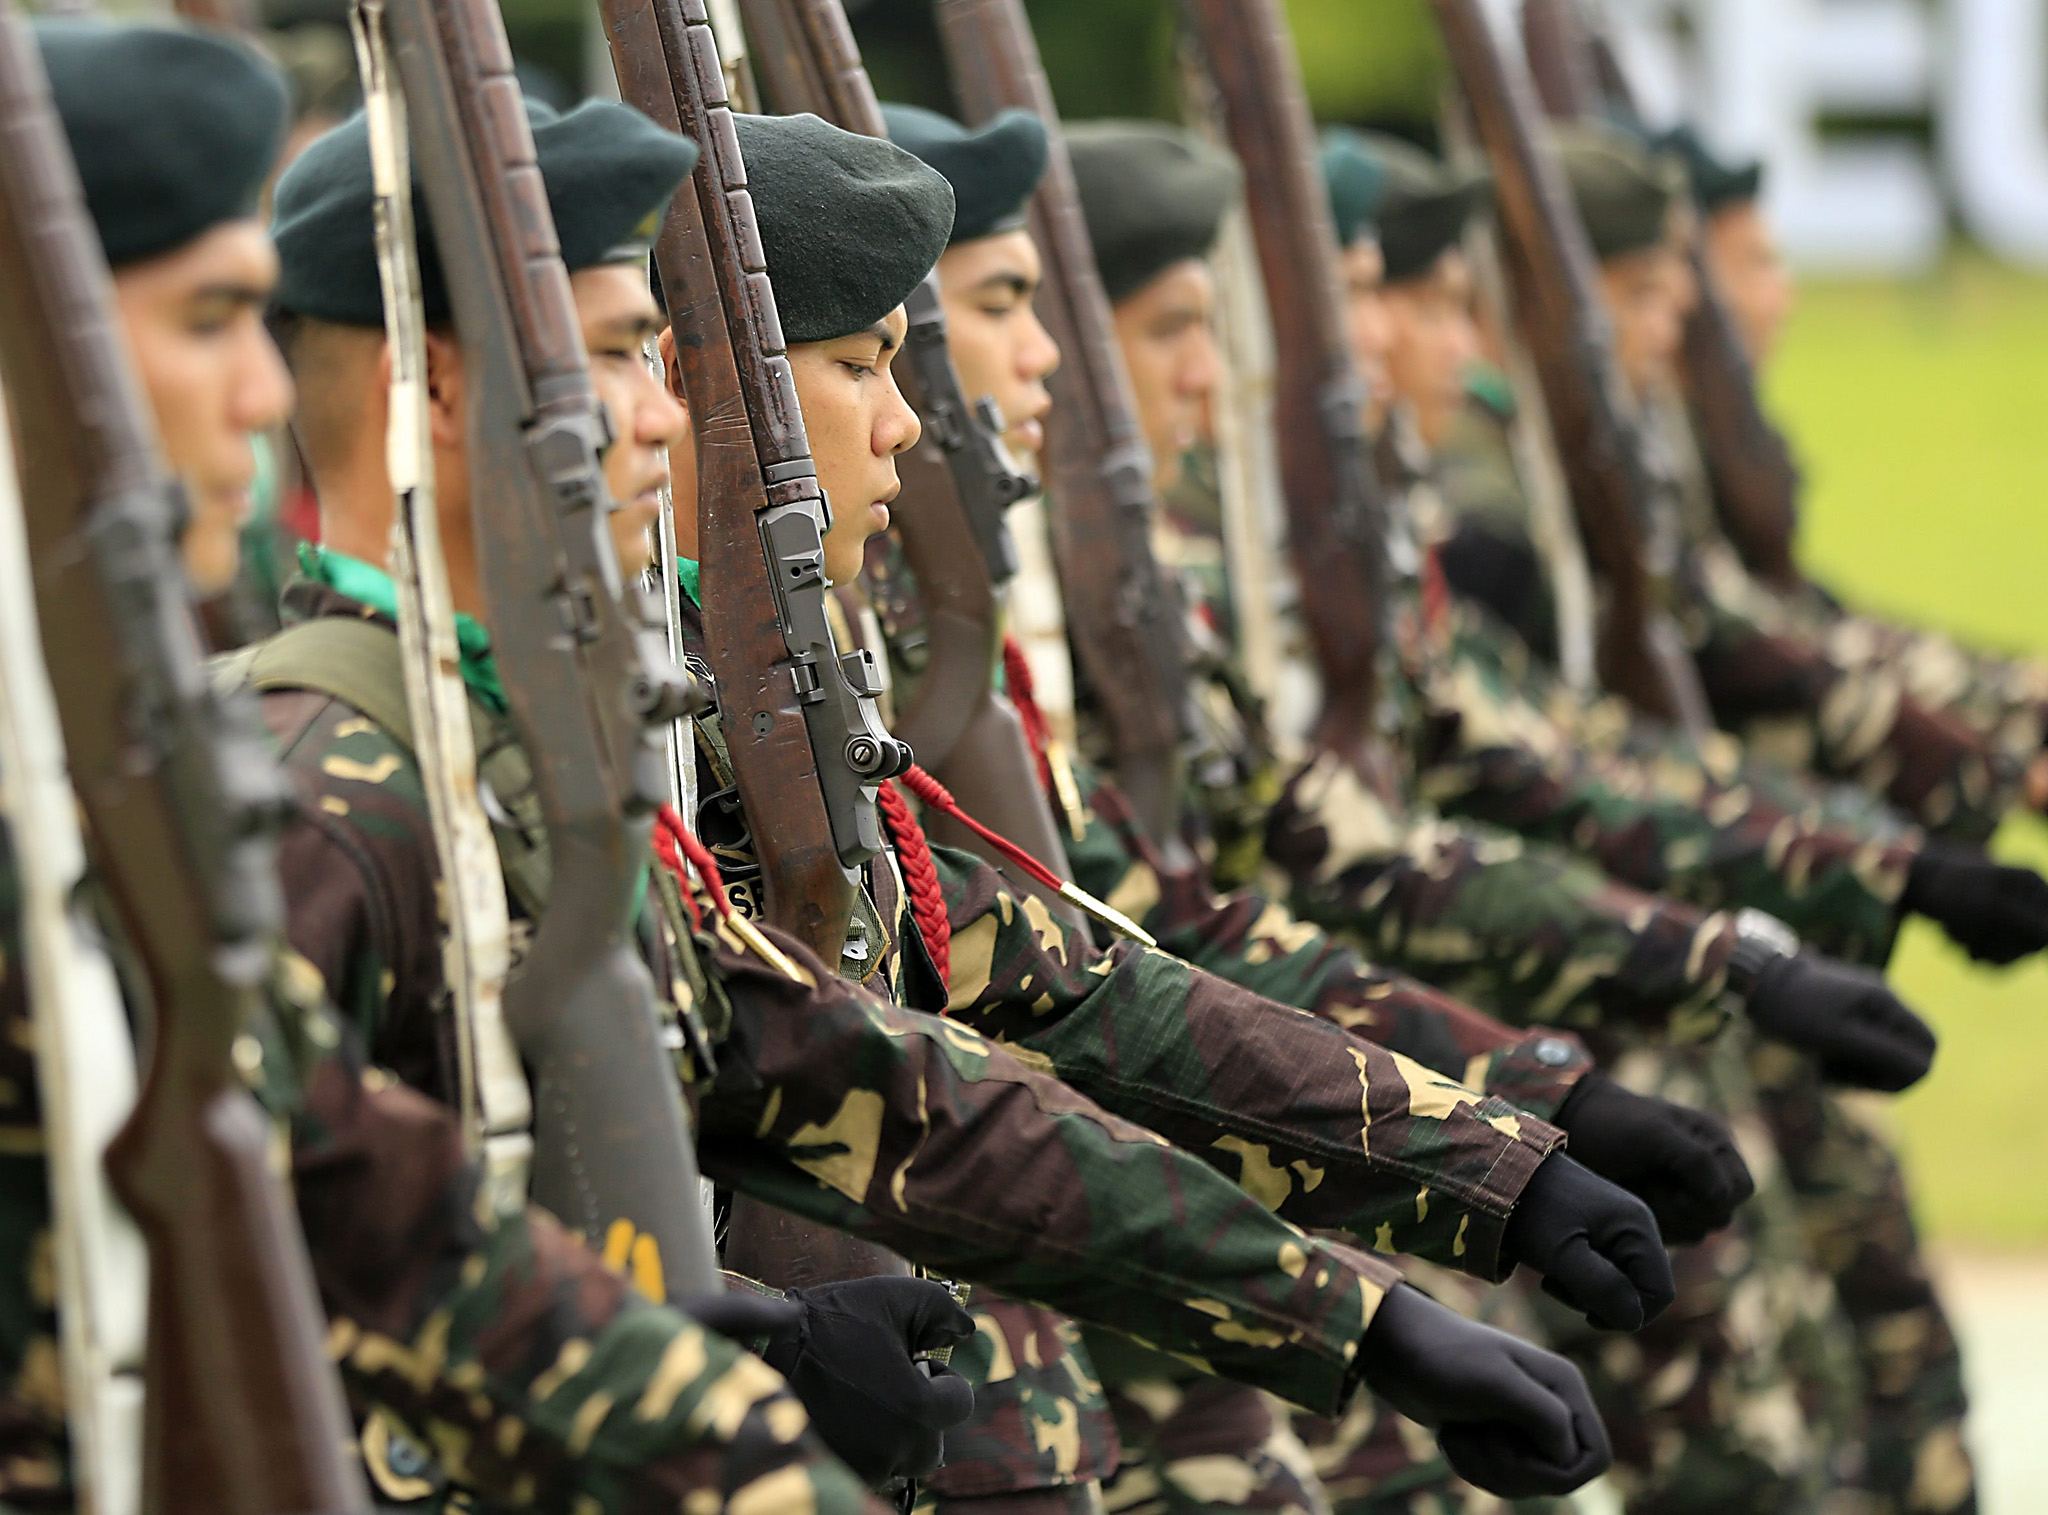 epa05387047 Filipino army soldiers parade during Defense Secretary Voltaire Gazmin's (unseen) visit to a military camp in Taguig city, south of Manila, Philippines, 24 June 2016. According to defense secretary Voltaire Gazmin, the armed forces of the Philippines continue pursuing the Abu Sayyaf in southern Philippines as the terrorist group abducted anew seven Indonesian sailors. The Islamist Abu Sayyaf group released Filipino hostage Marites Flor, western Mindanao command spokesman Filemon Tan said.  EPA/EUGENIO LORETO